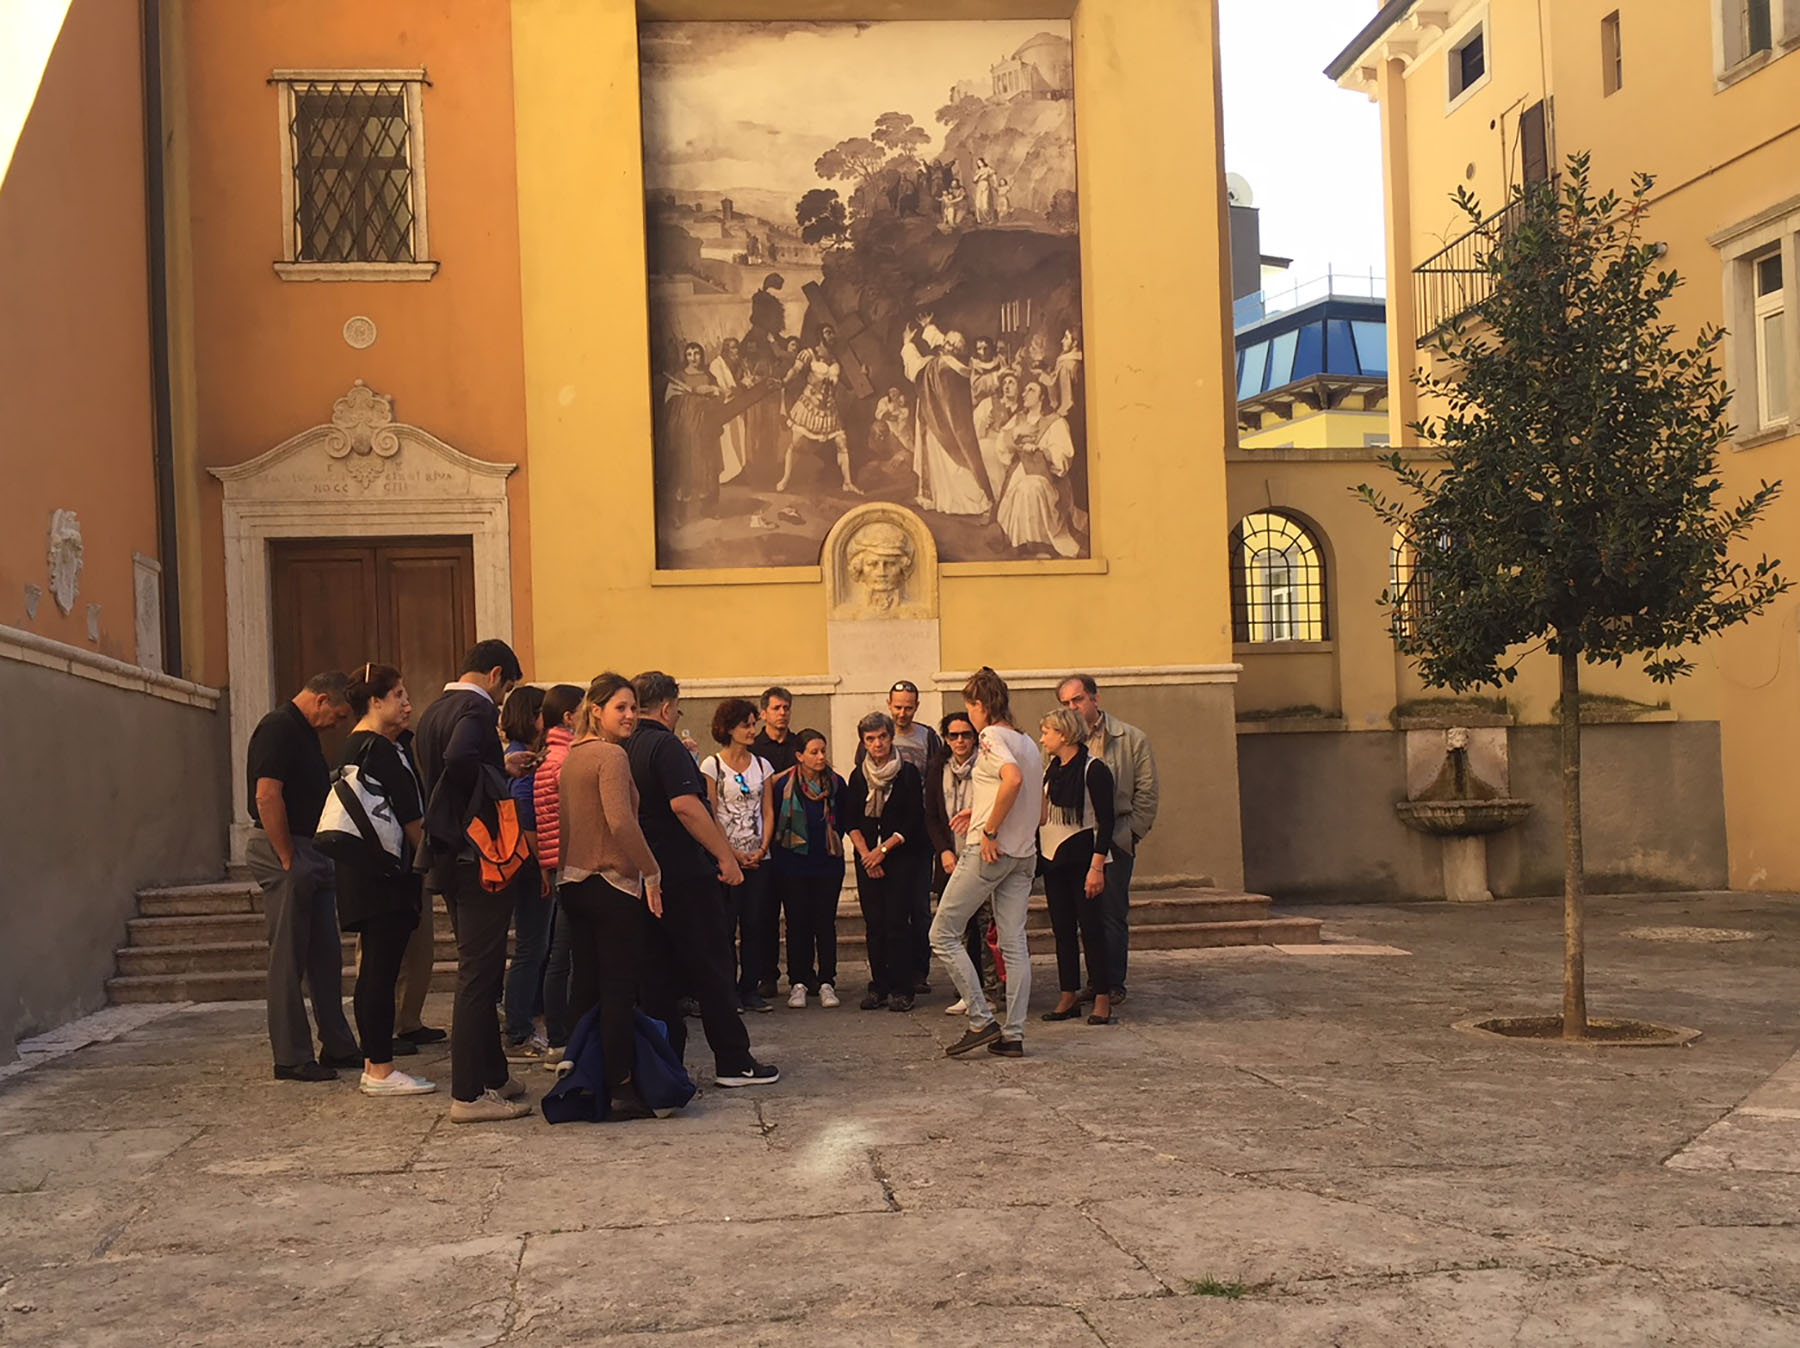 Street choir in Riva del Garda, a common occurrence during the In....Canto sul Garda